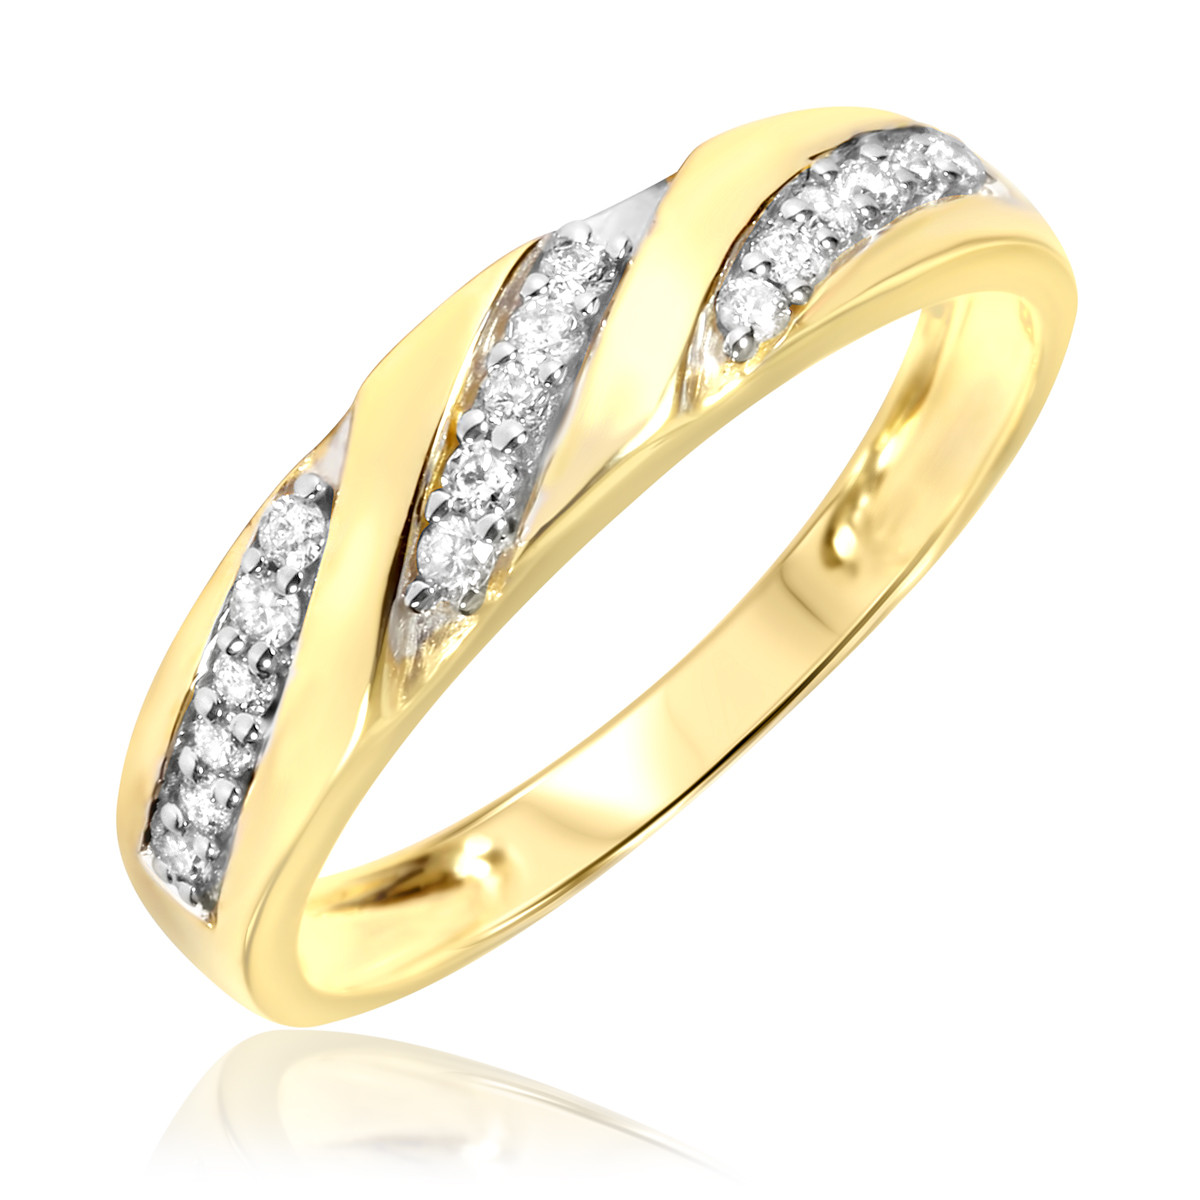 1 4 carat tw diamond men39s wedding ring 14k yellow gold for Mens wedding rings yellow gold